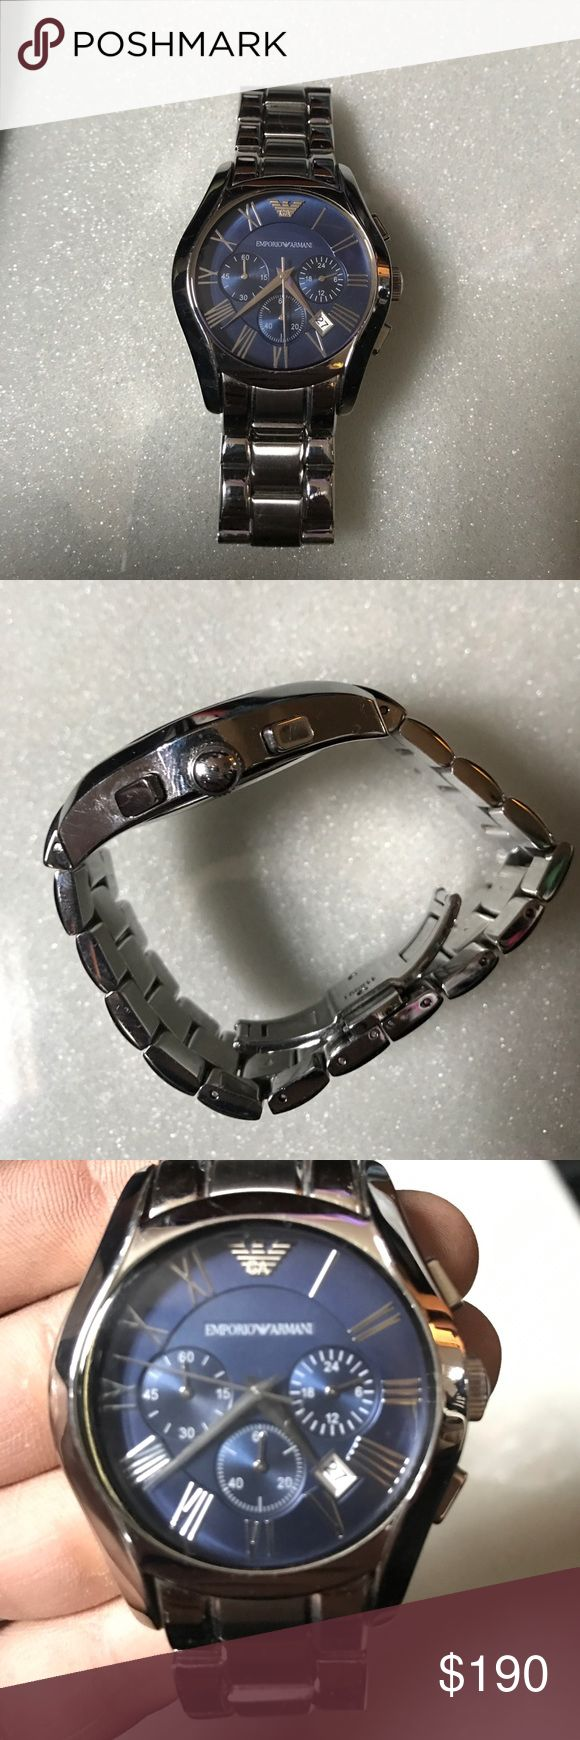 Armani men's Watch Men's Armani watch silver and a blue face. Dark blue. Perfect working condition Emporio Armani Accessories Watches